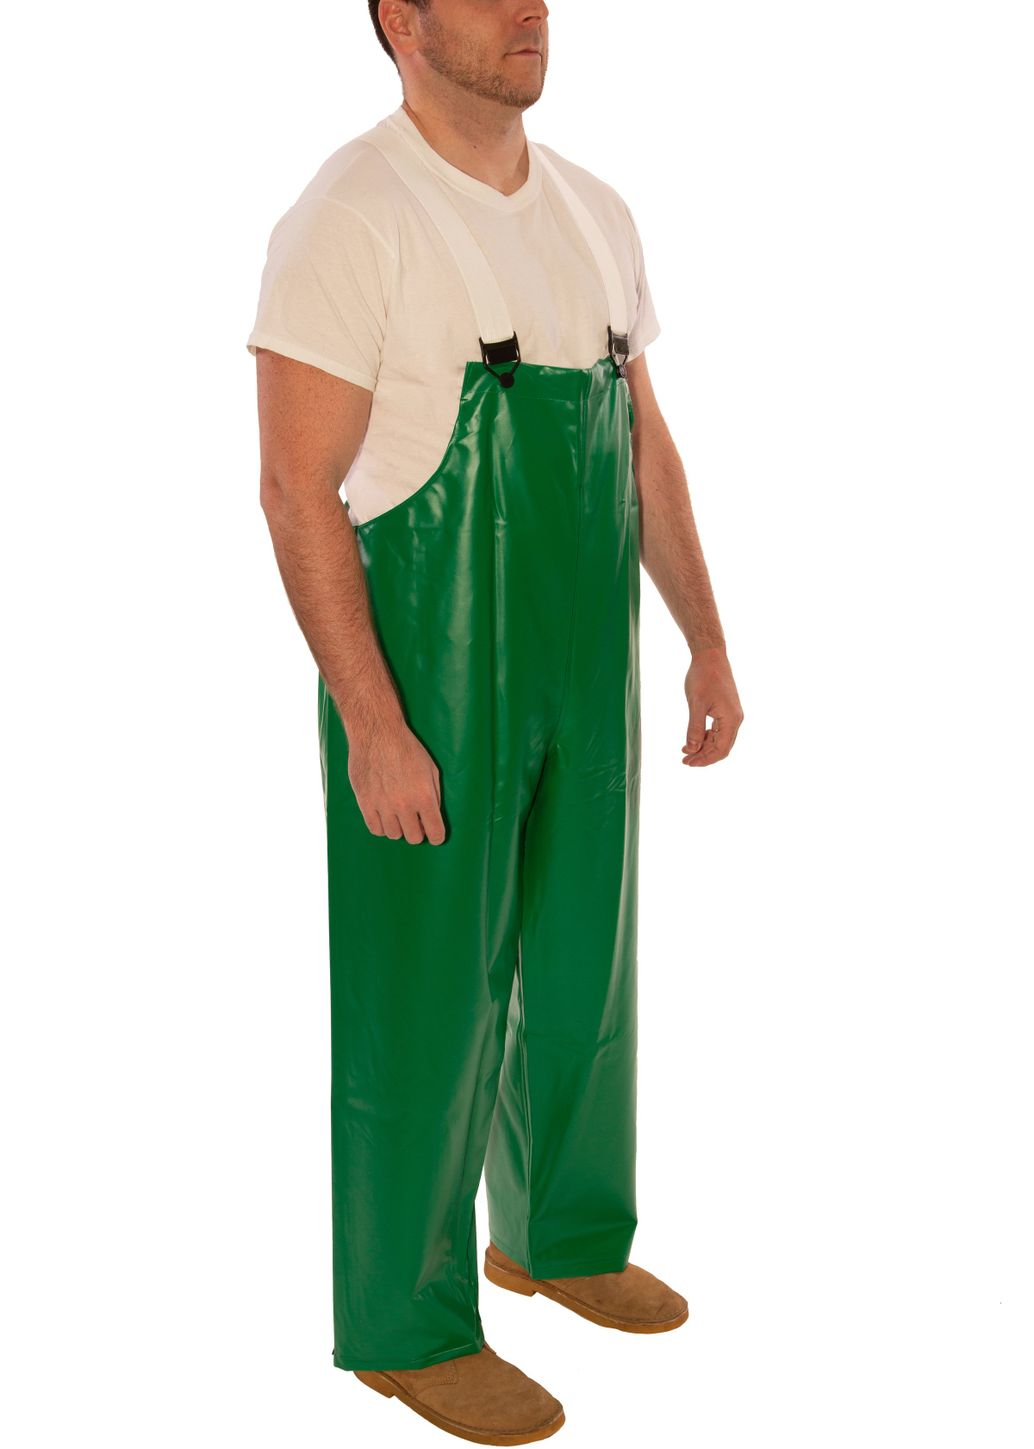 tingley-o41008-safetyflex-fire-resistant-overalls-pvc-coated-chemical-resistant-side.jpg